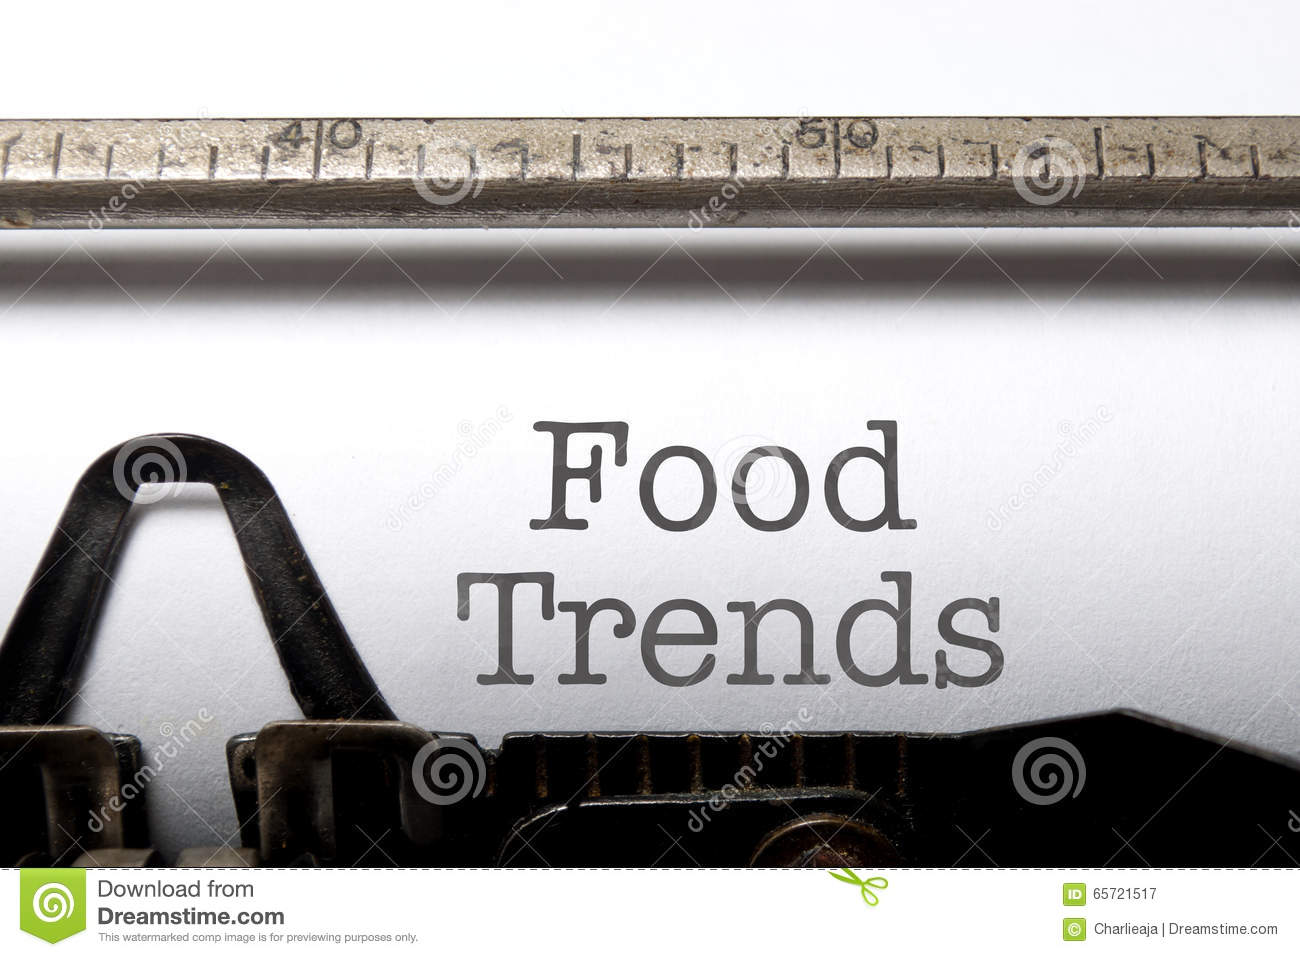 Food trends stock image  Image of nobody, agriculture - 65721517